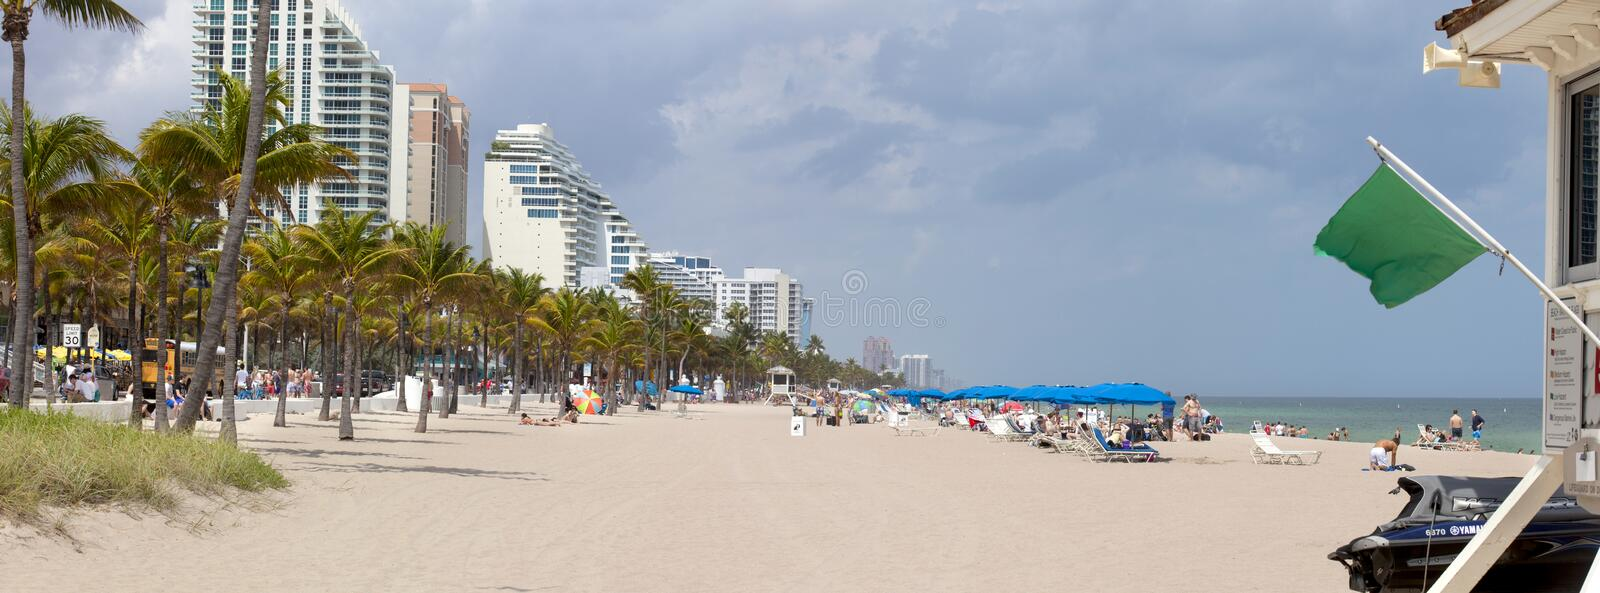 Fort Lauderdale Beach (panoramic). Wide angle view of Fort Lauderdale beach.n2 pictures were used to make this larger, wide angle view royalty free stock photos